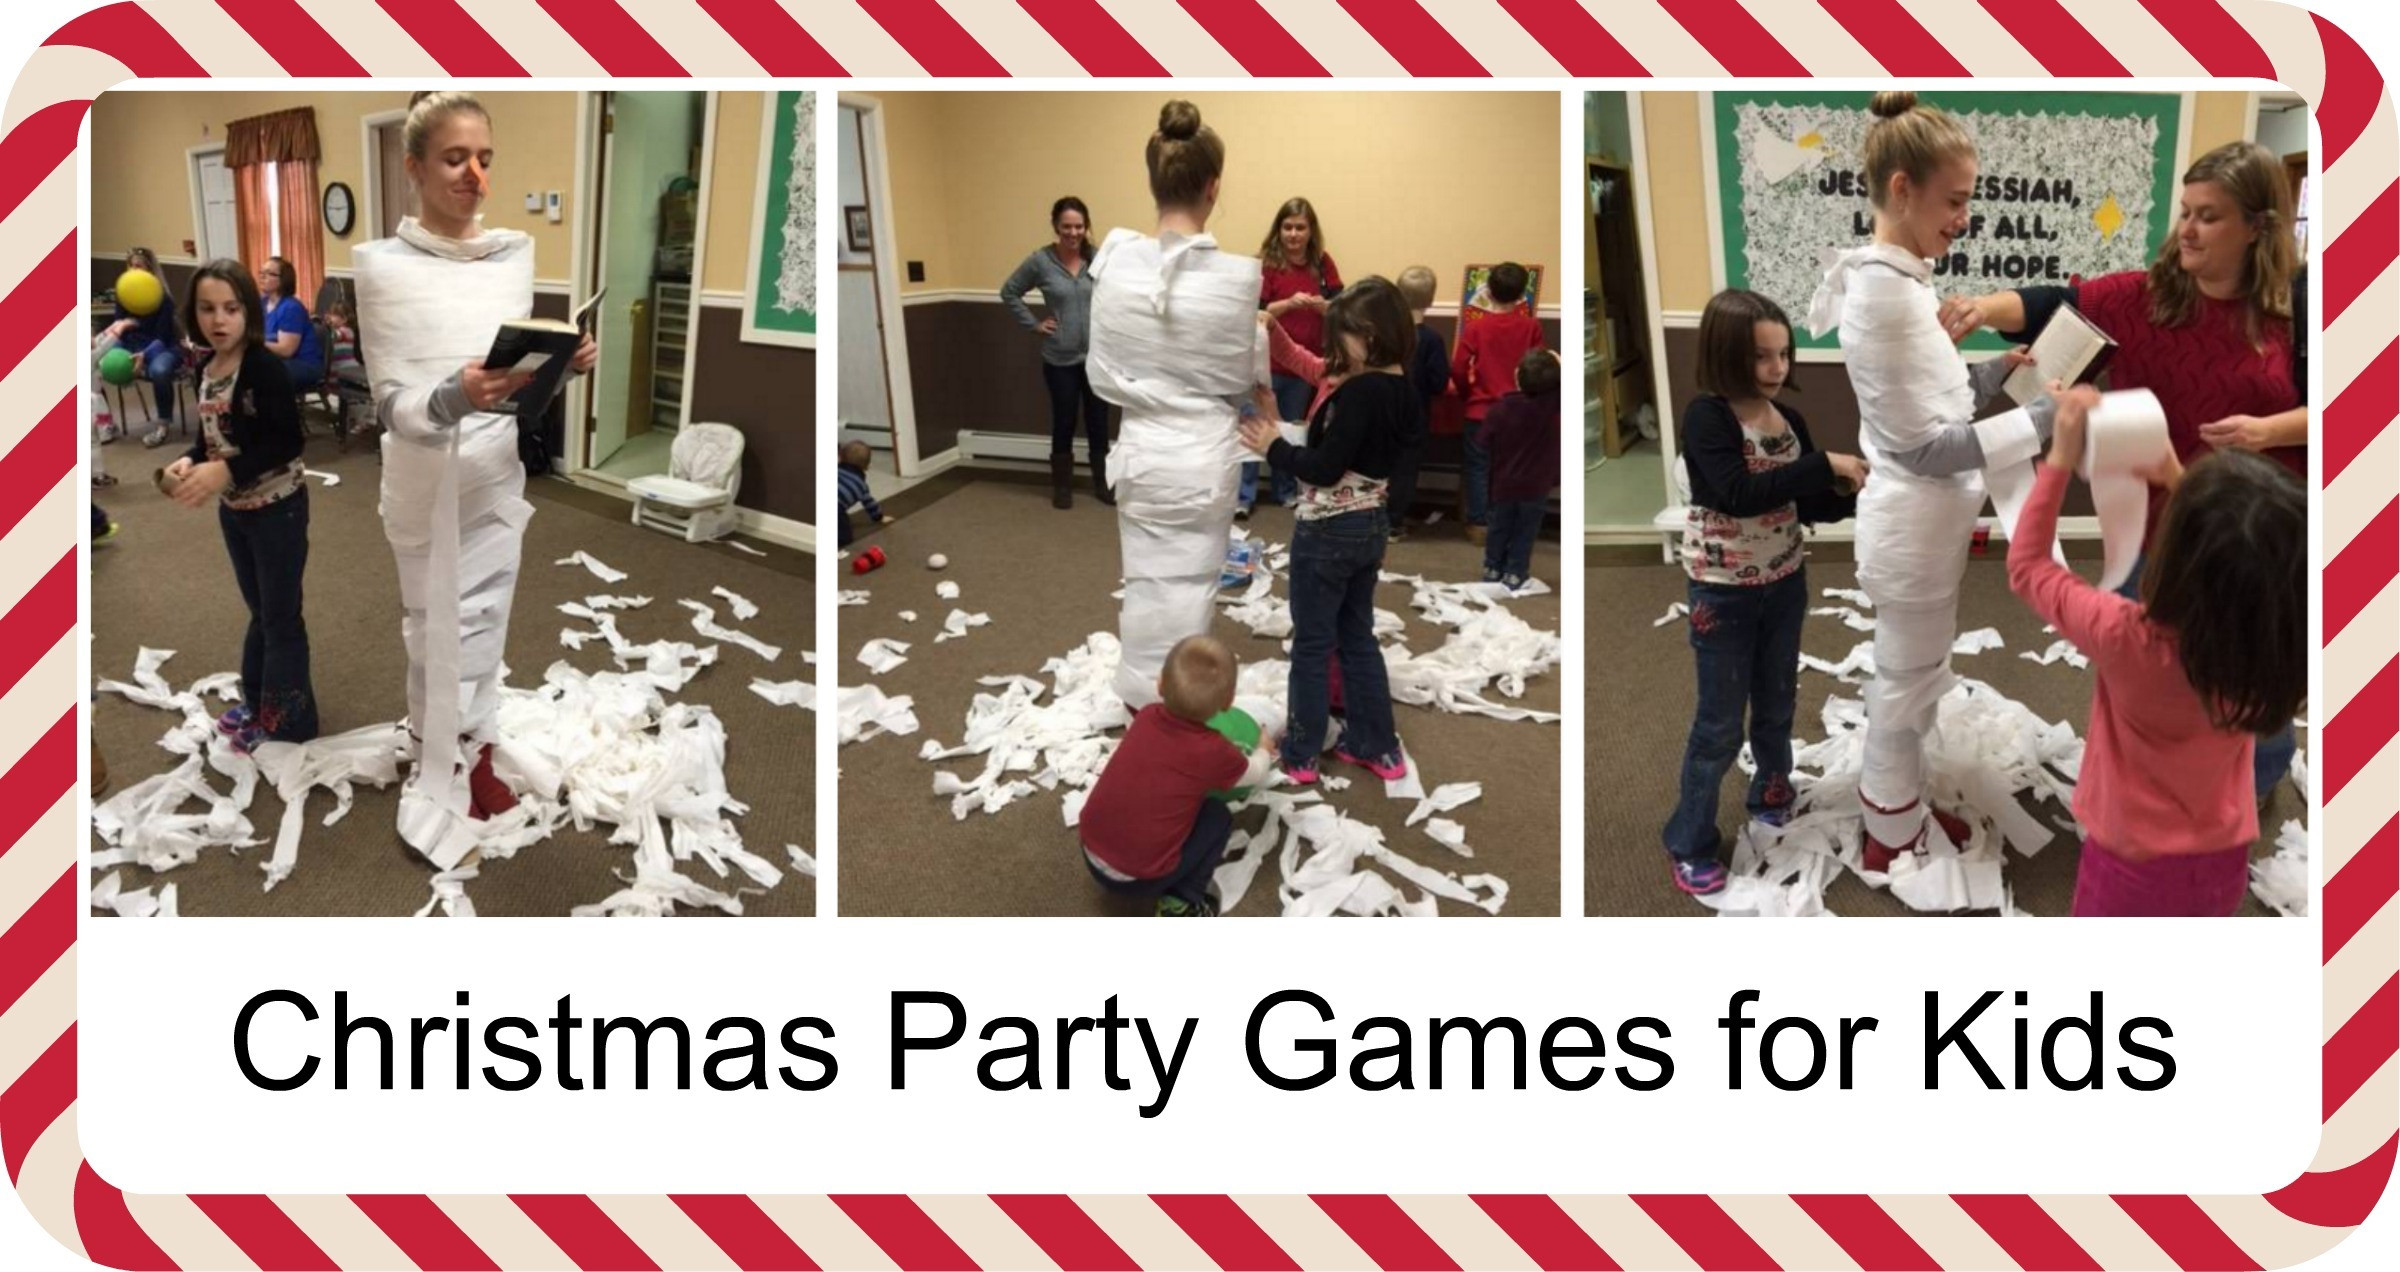 Christmas Party Game Ideas For Kids  Cool Christmas Games